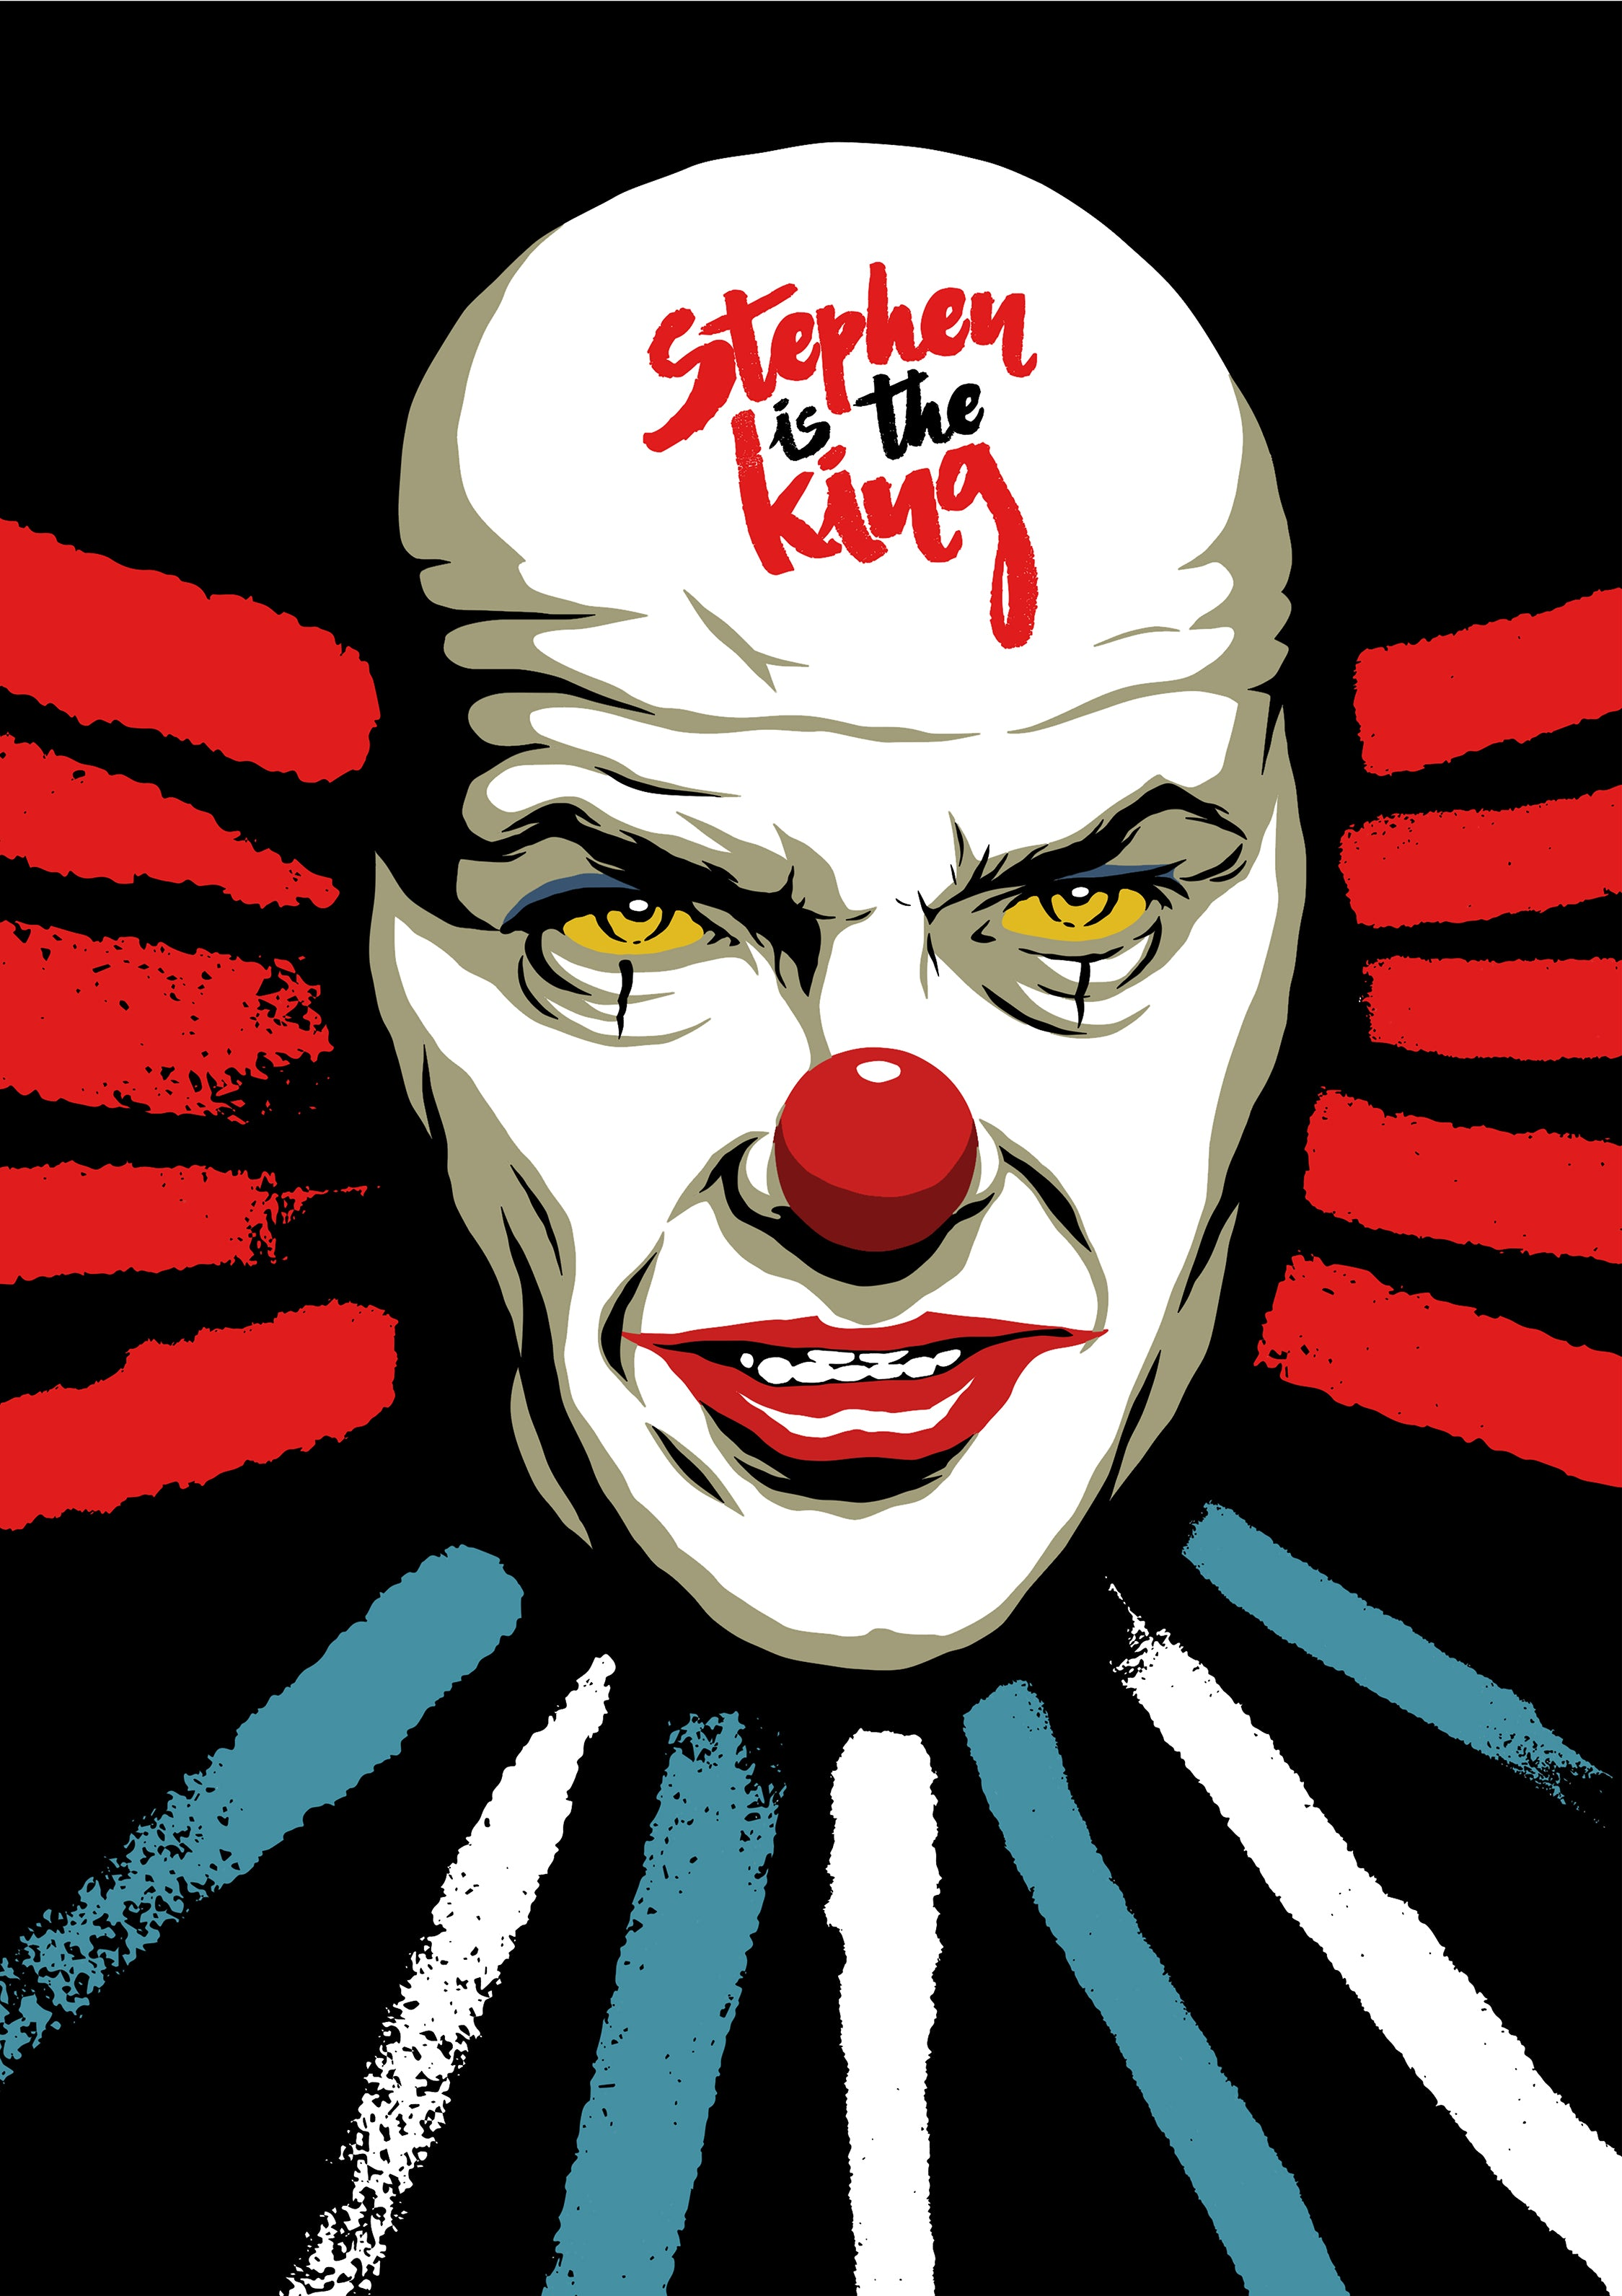 Stephen is King Print by Butcher Billy